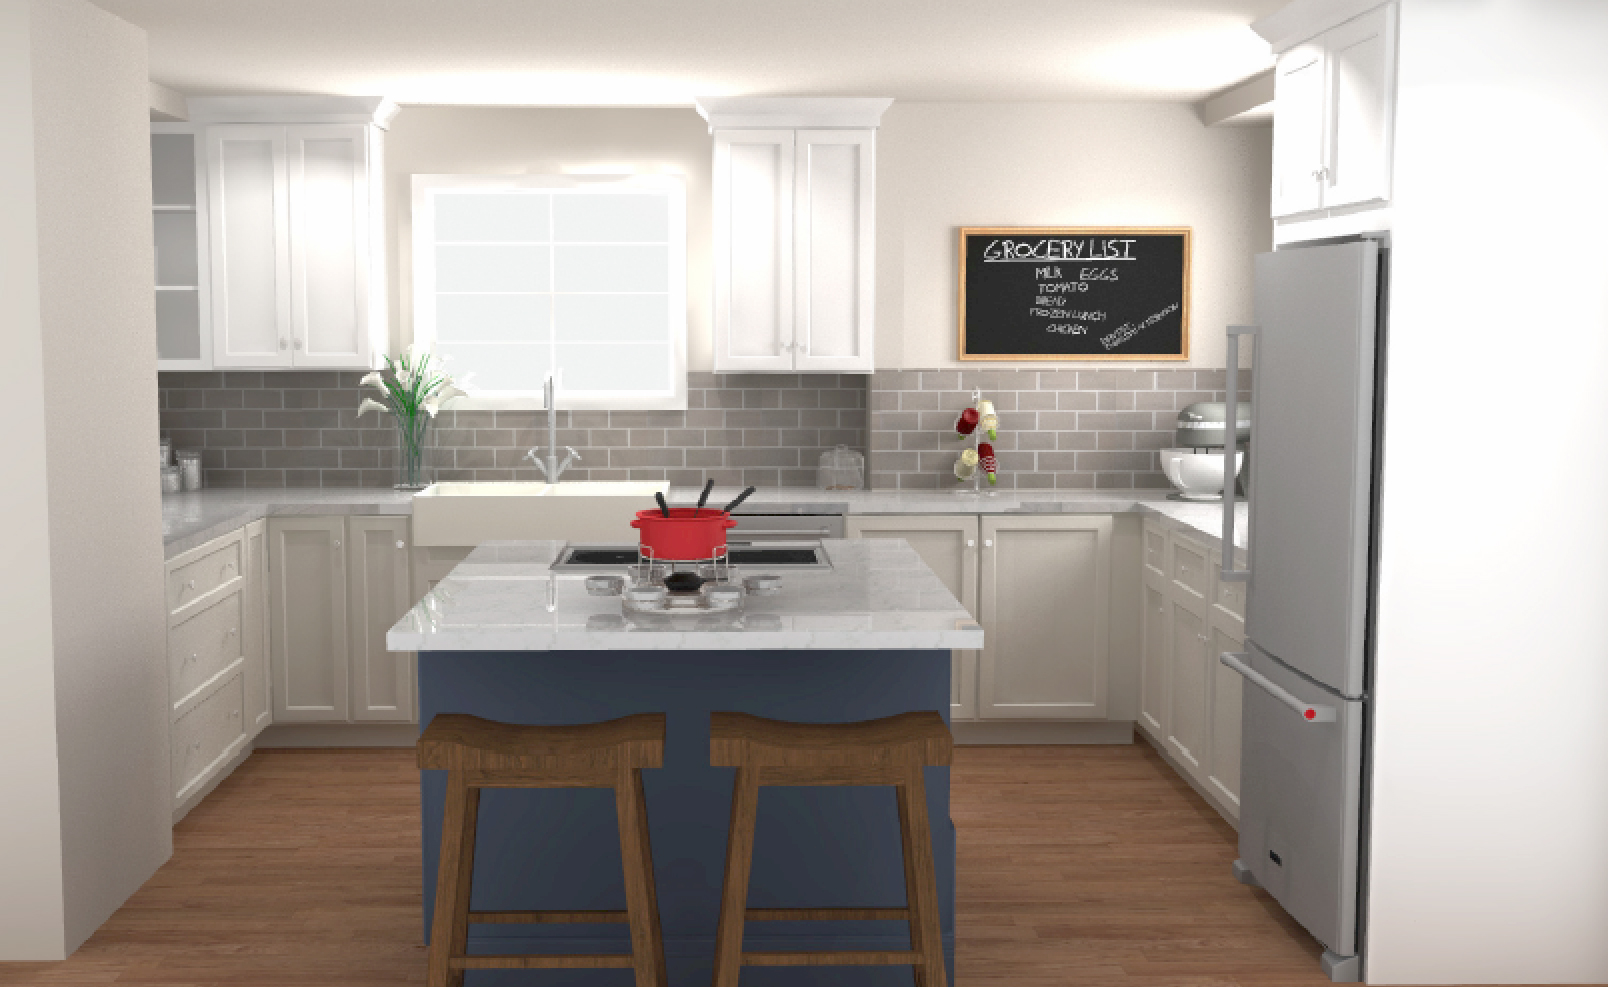 cabinets.com kitchen rendering for vintage home